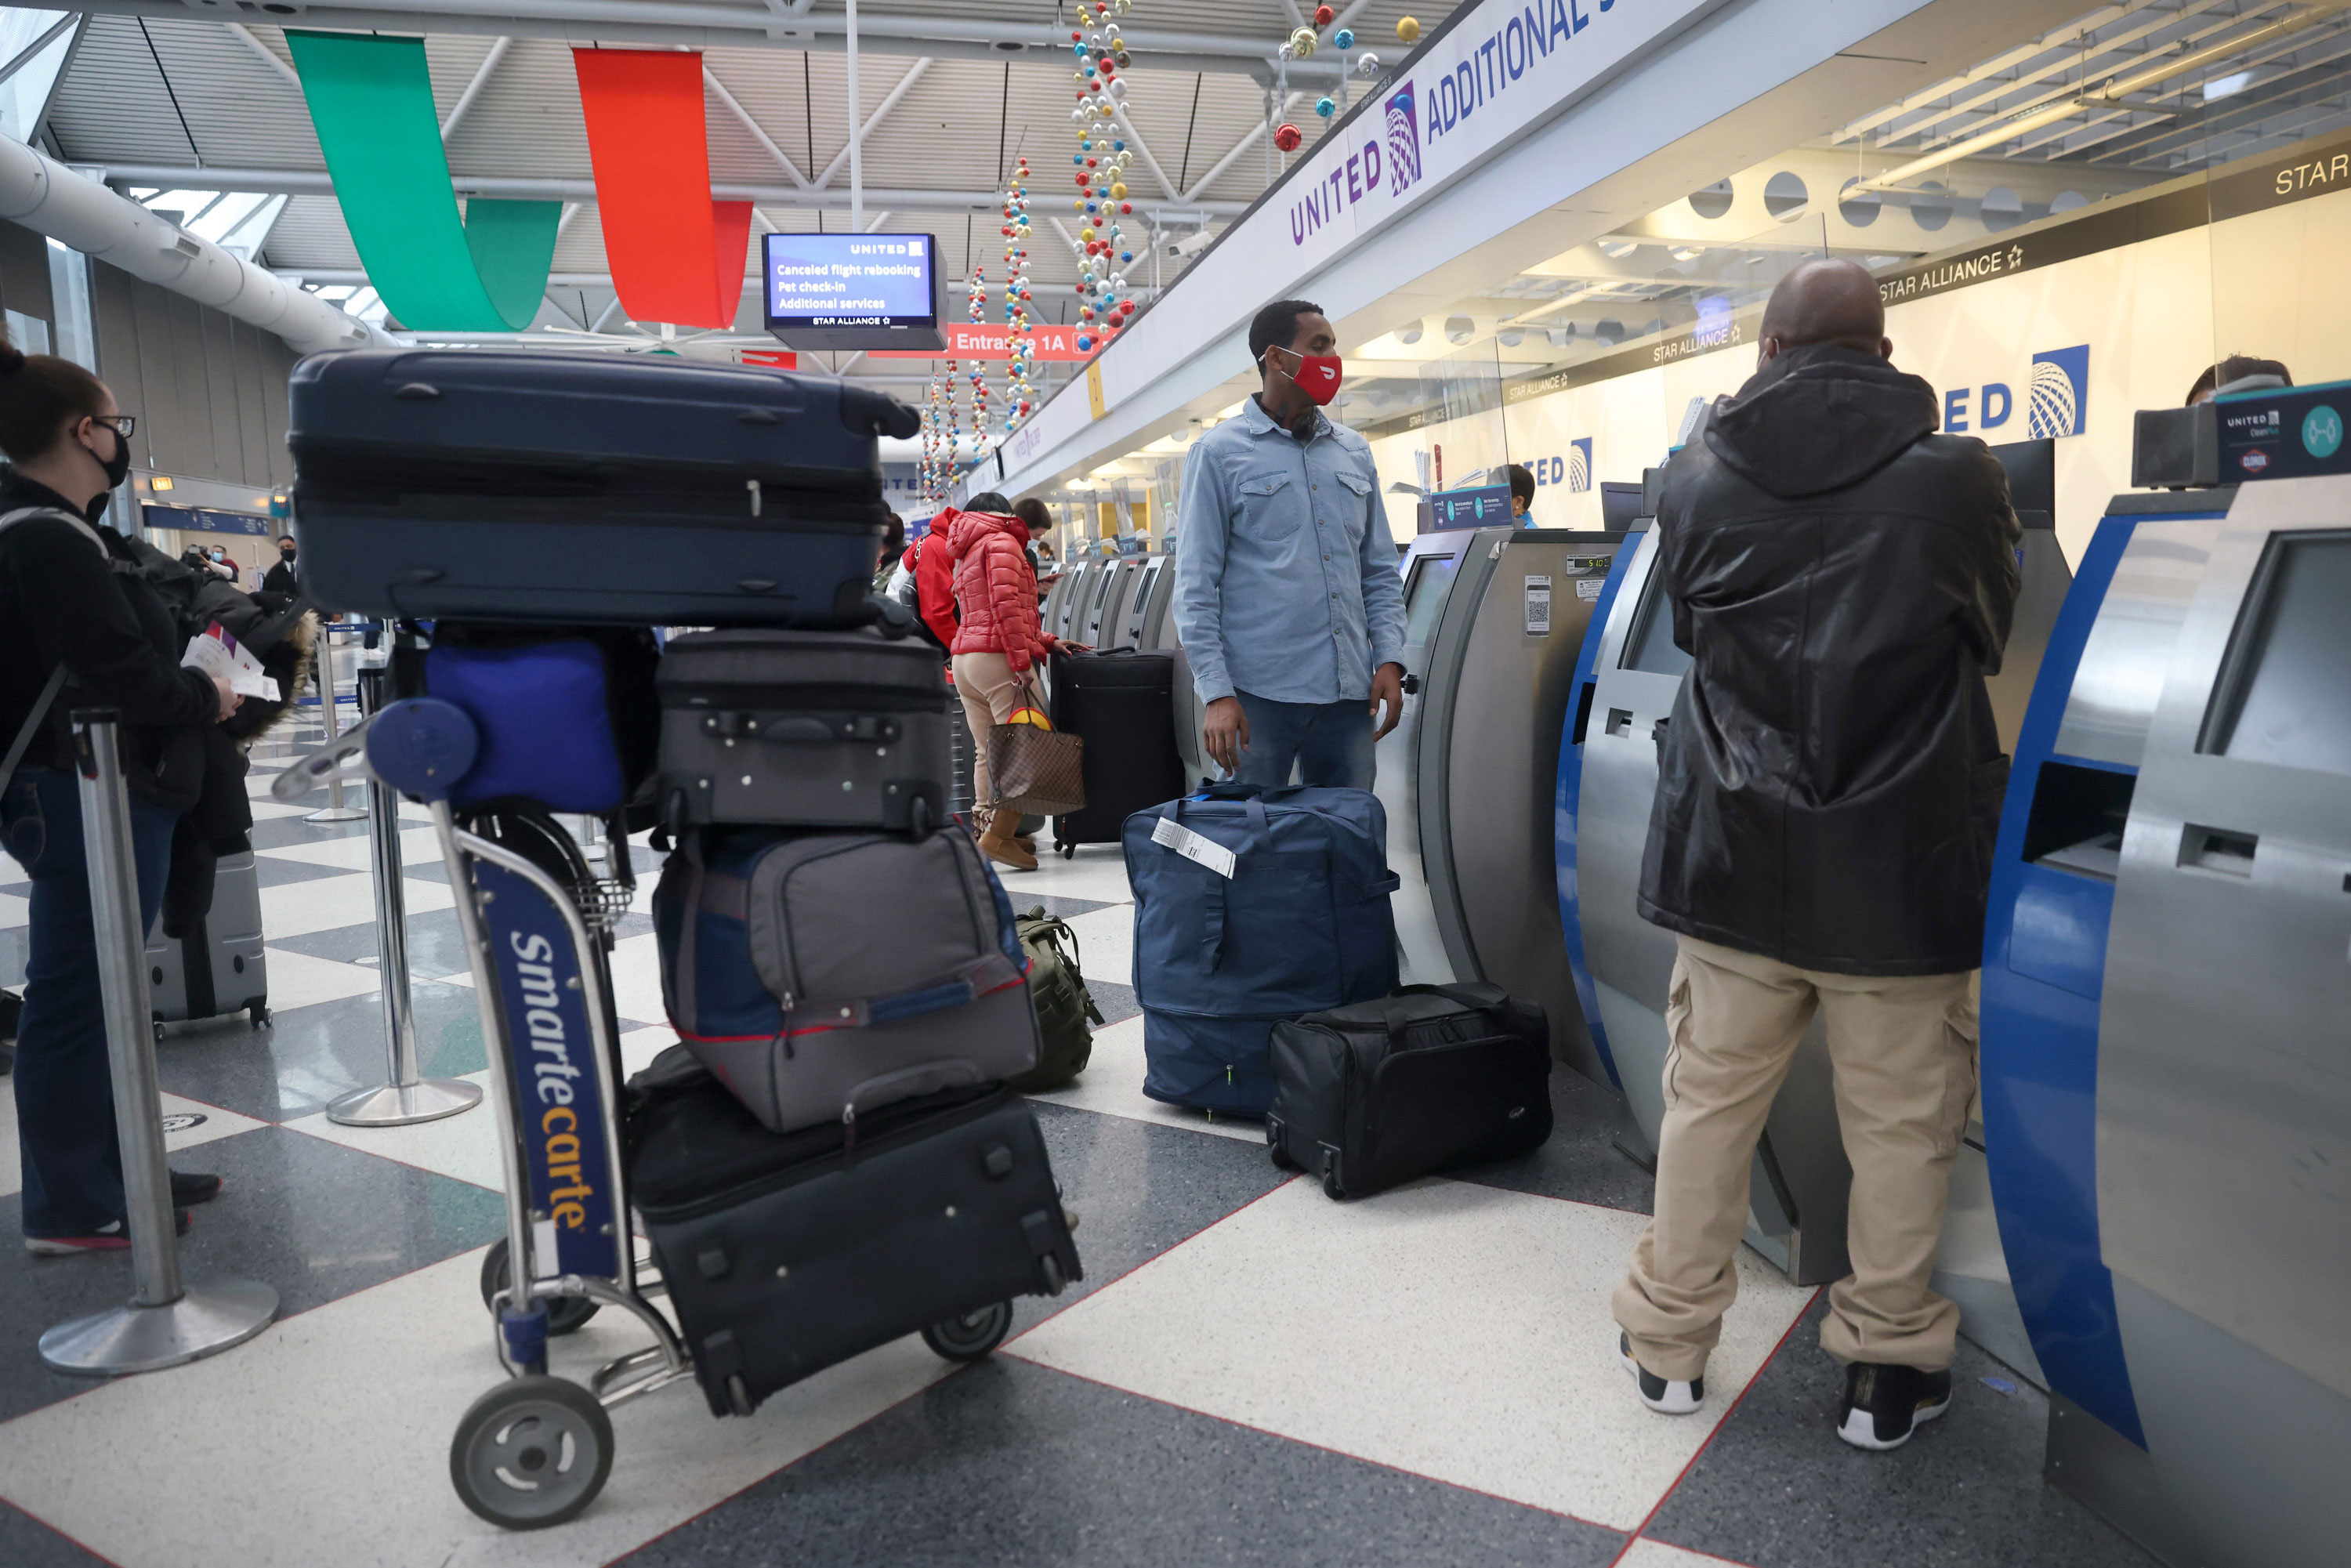 Travelers pass through O'Hare International Airport in Chicago on December 23.